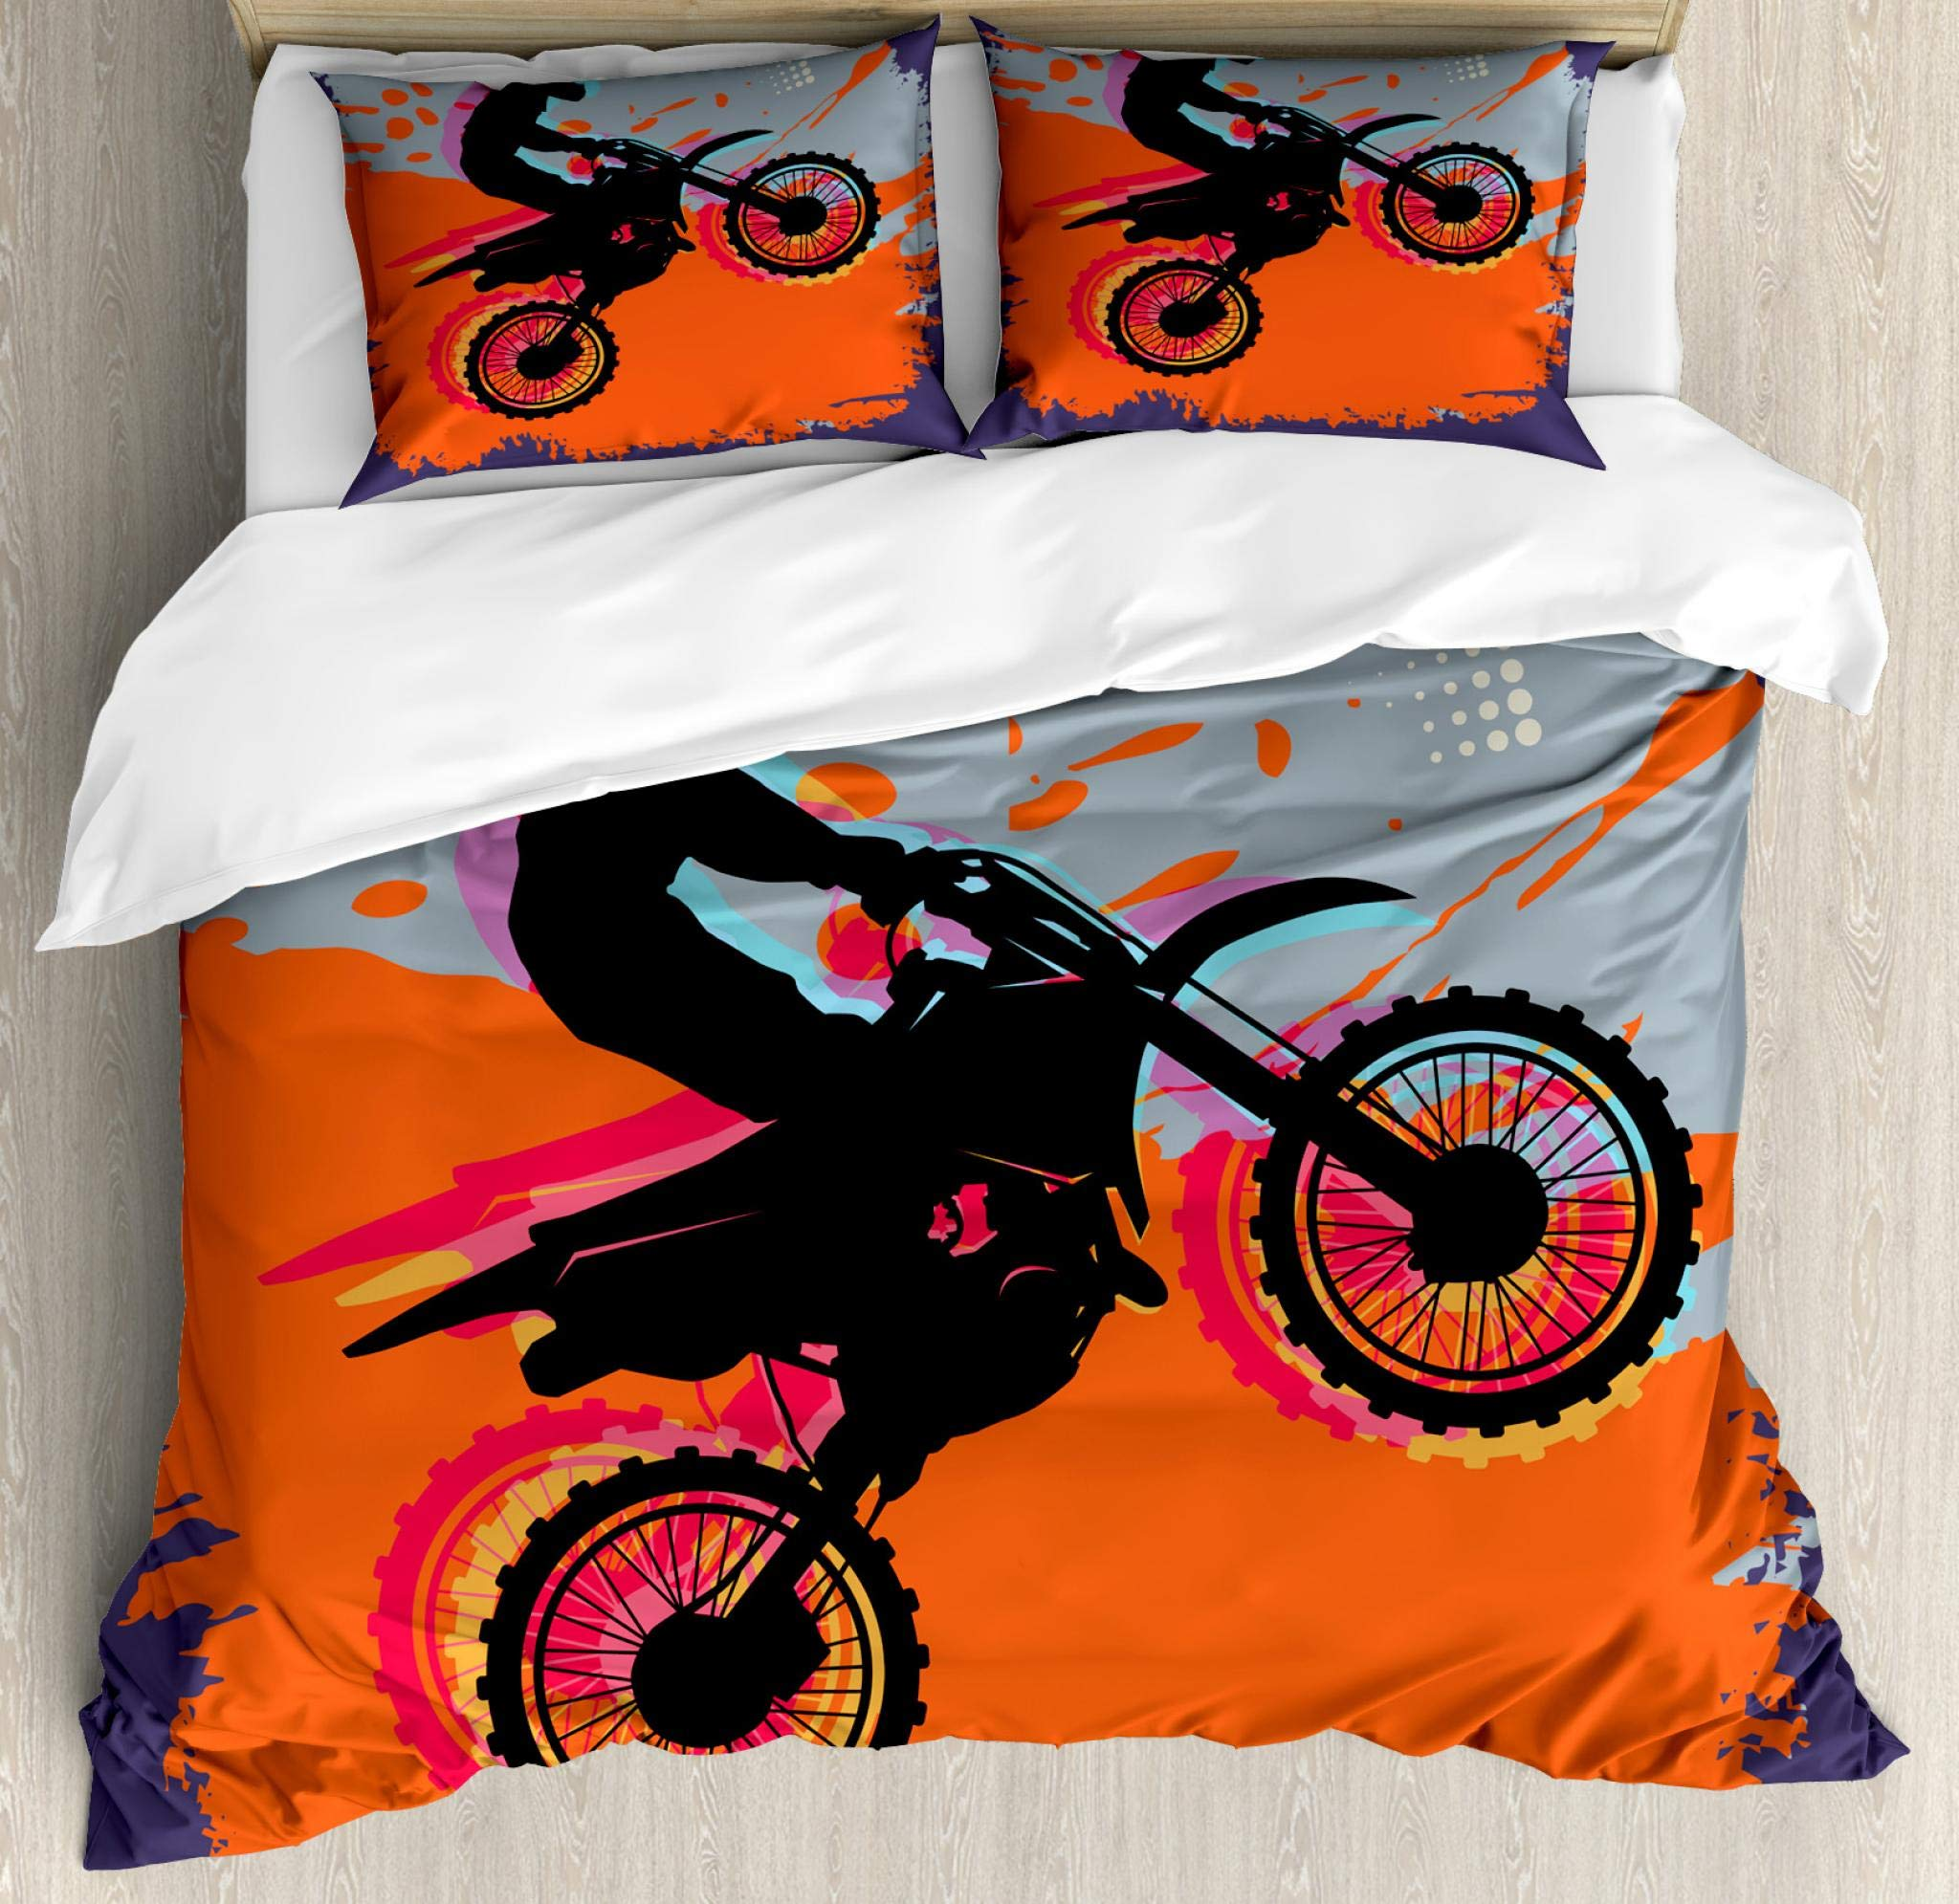 Lunarable Dirt Bike Duvet Cover Set Queen Size, Grunge Composition of a Biker in a Stunt Move Cross Country Tournament Theme, Decorative 3 Piece Bedding Set with 2 Pillow Shams, Multicolor